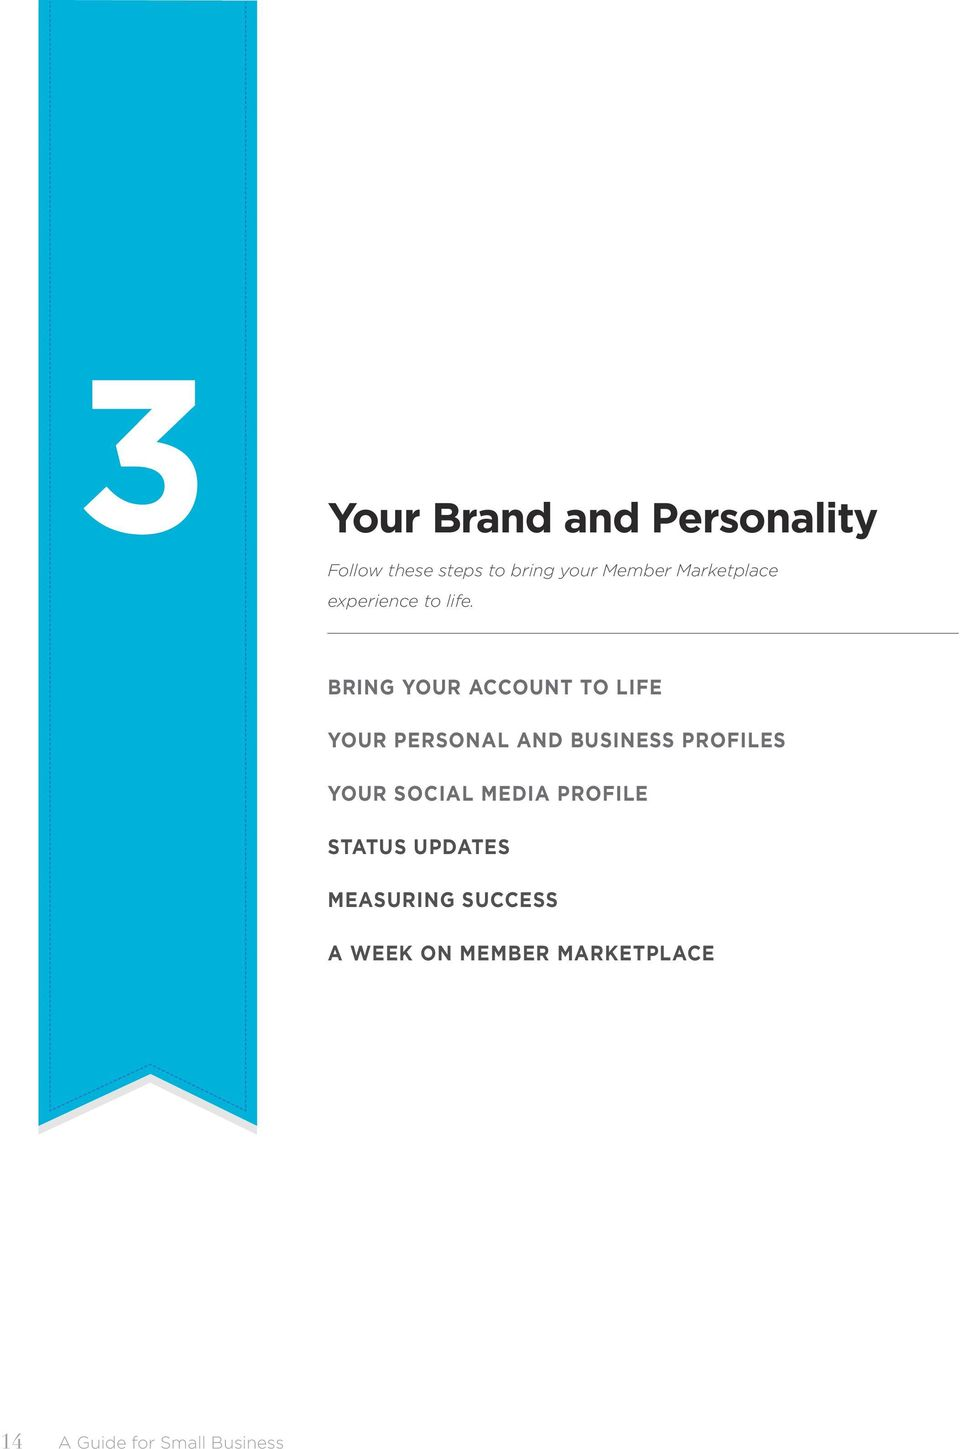 BRING YOUR ACCOUNT TO LIFE YOUR PERSONAL AND BUSINESS PROFILES YOUR